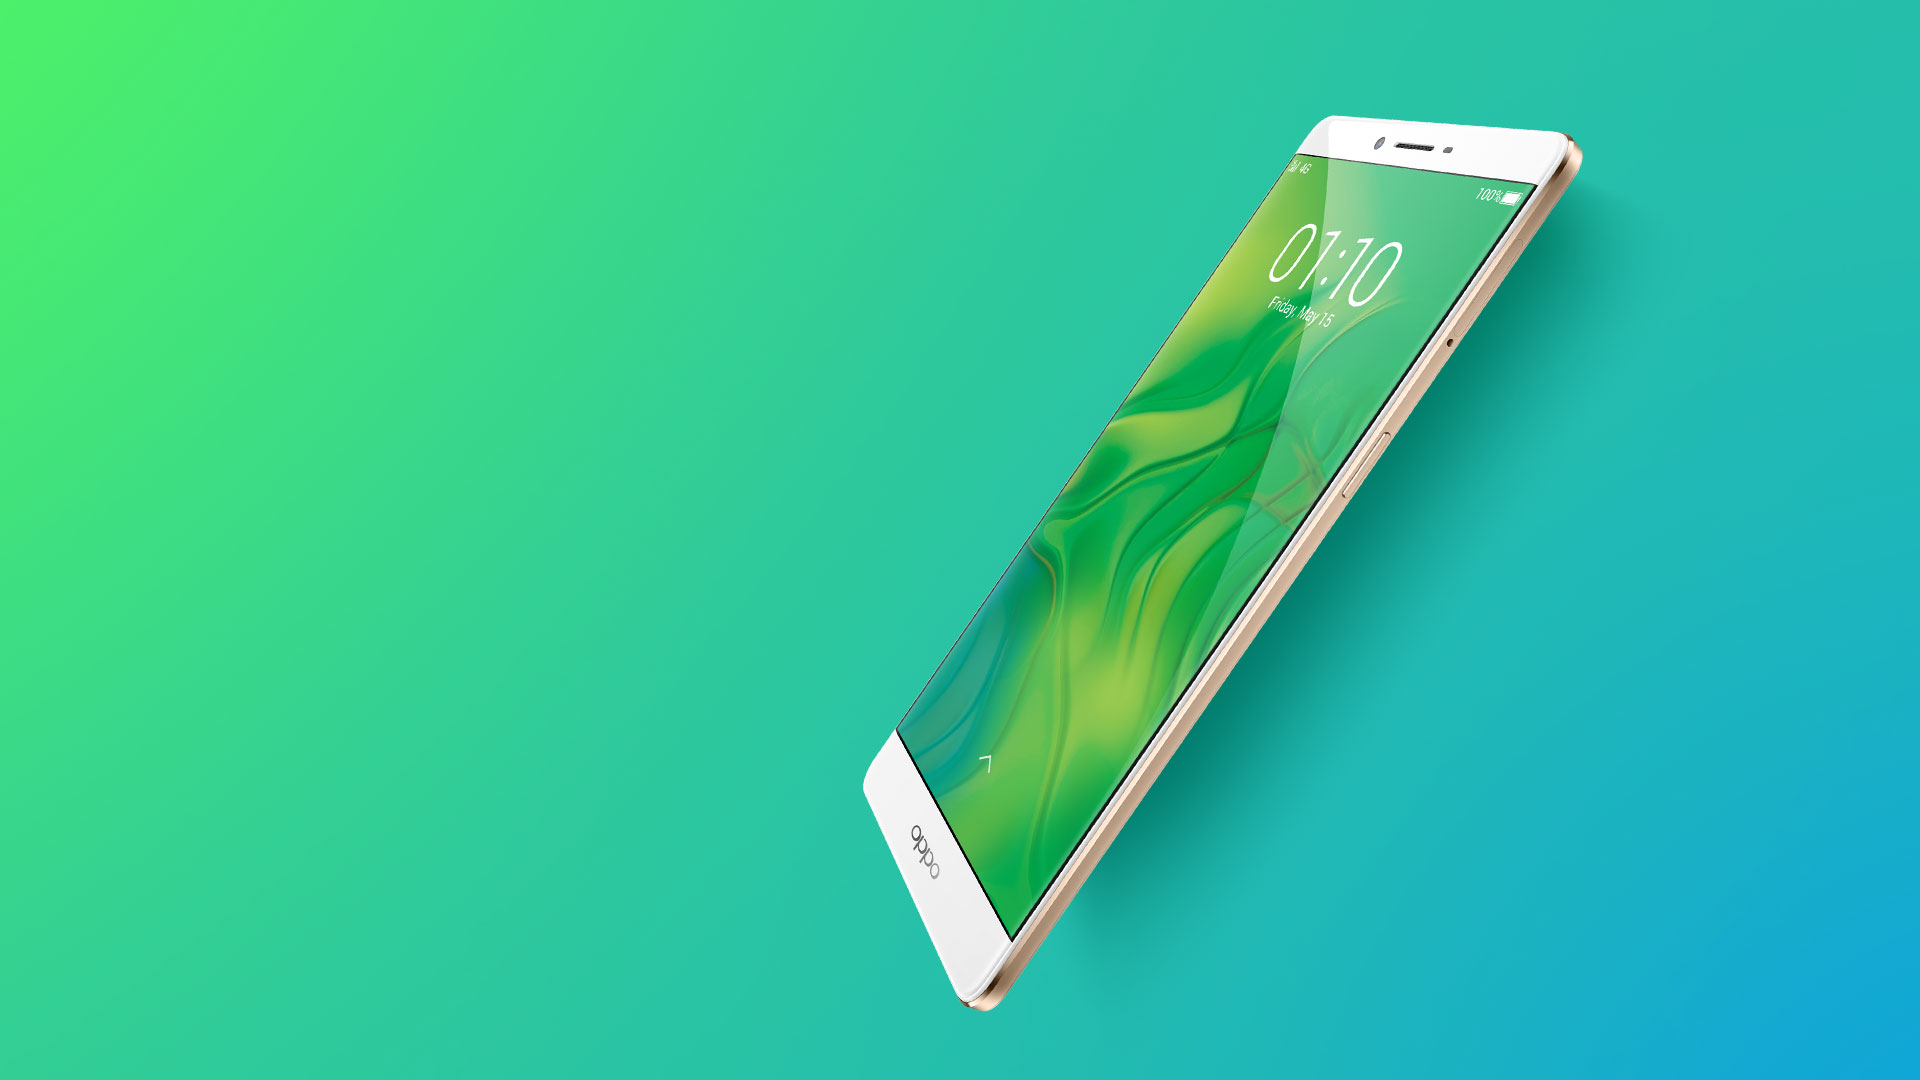 Hd wallpaper oppo - Oppo R7 Plus 1